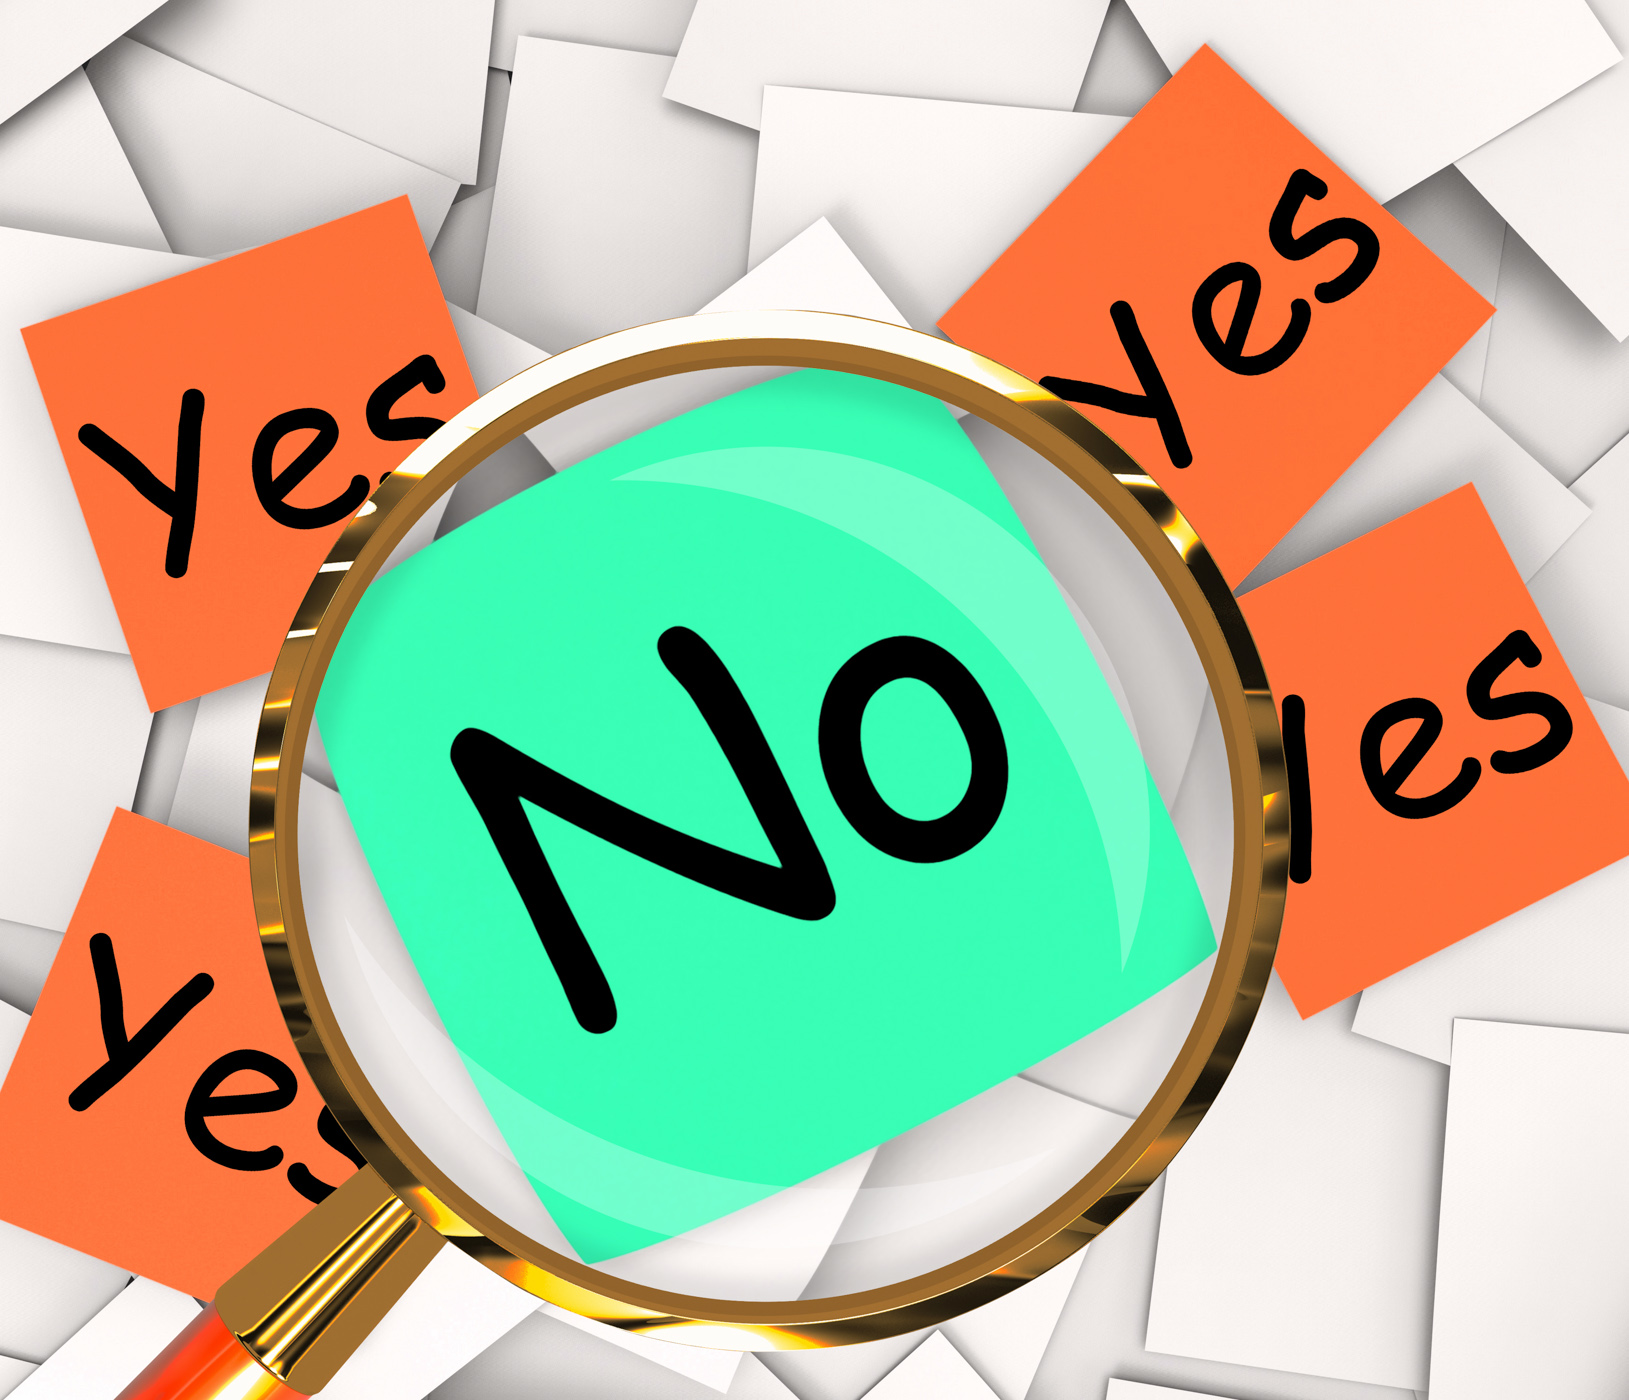 Yes no post-it papers show affirmative or negative photo